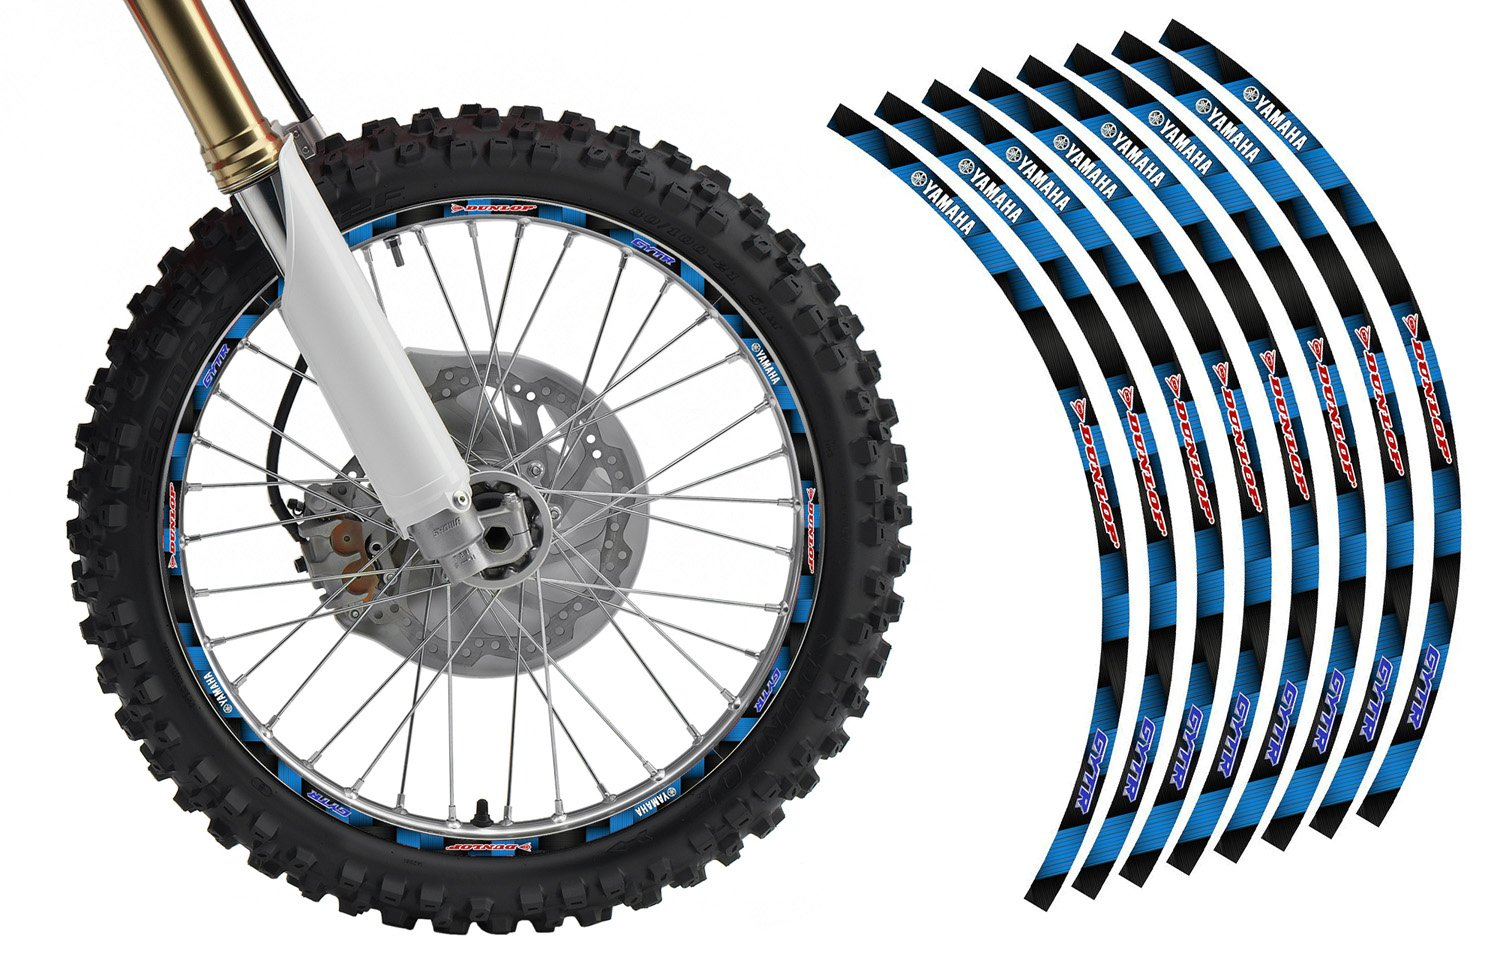 Yamaha Dirt Bike Rim Protector Decal Kit for 19 and 21 Inch Wheels By Allmotorgraphics No2119yb